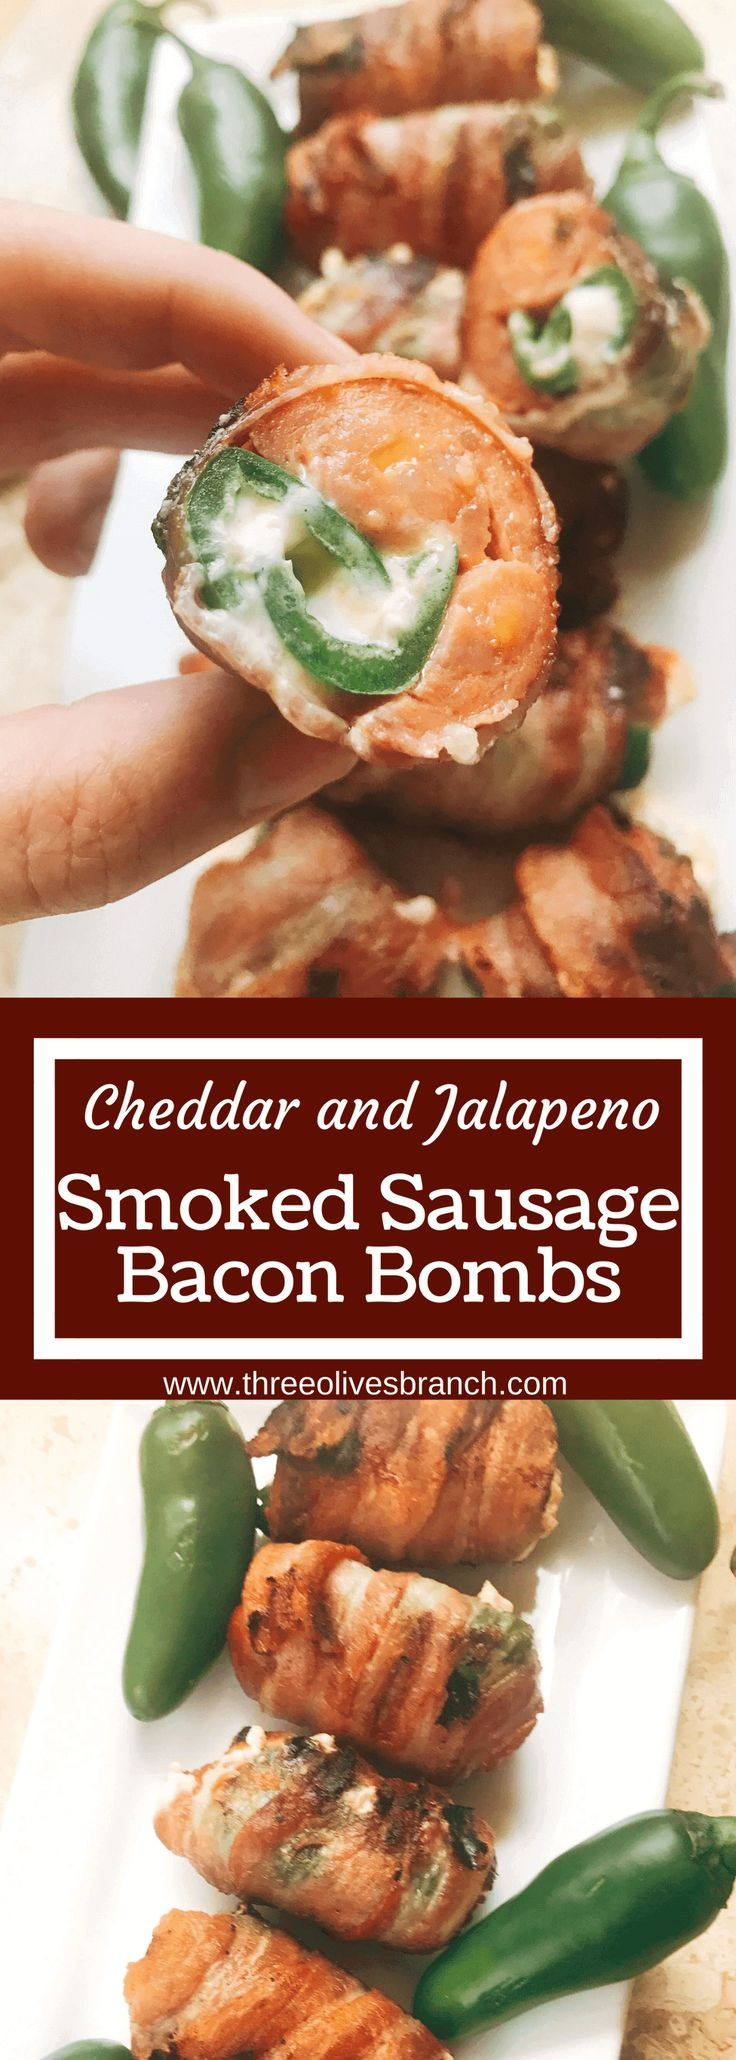 Grill up some of these smoky, cheesy treats for your next summer party. Eckrich Cheddar and Jalapeno Smoked Sausage is stuffed with a jalapeno pepper (which has been filled with cheddar and cream cheese), then rolled in bacon and grilled until crispy. They make such a fun appetizer or dinner for the pork lovers. A fun twist on a jalapeno popper and full of flavor. A great way to kick of football Sunday or game day. Cheddar Jalapeno Smoked Sausage Bacon Bombs #ad #GiveLifeMoreFlavor @Eckrich…